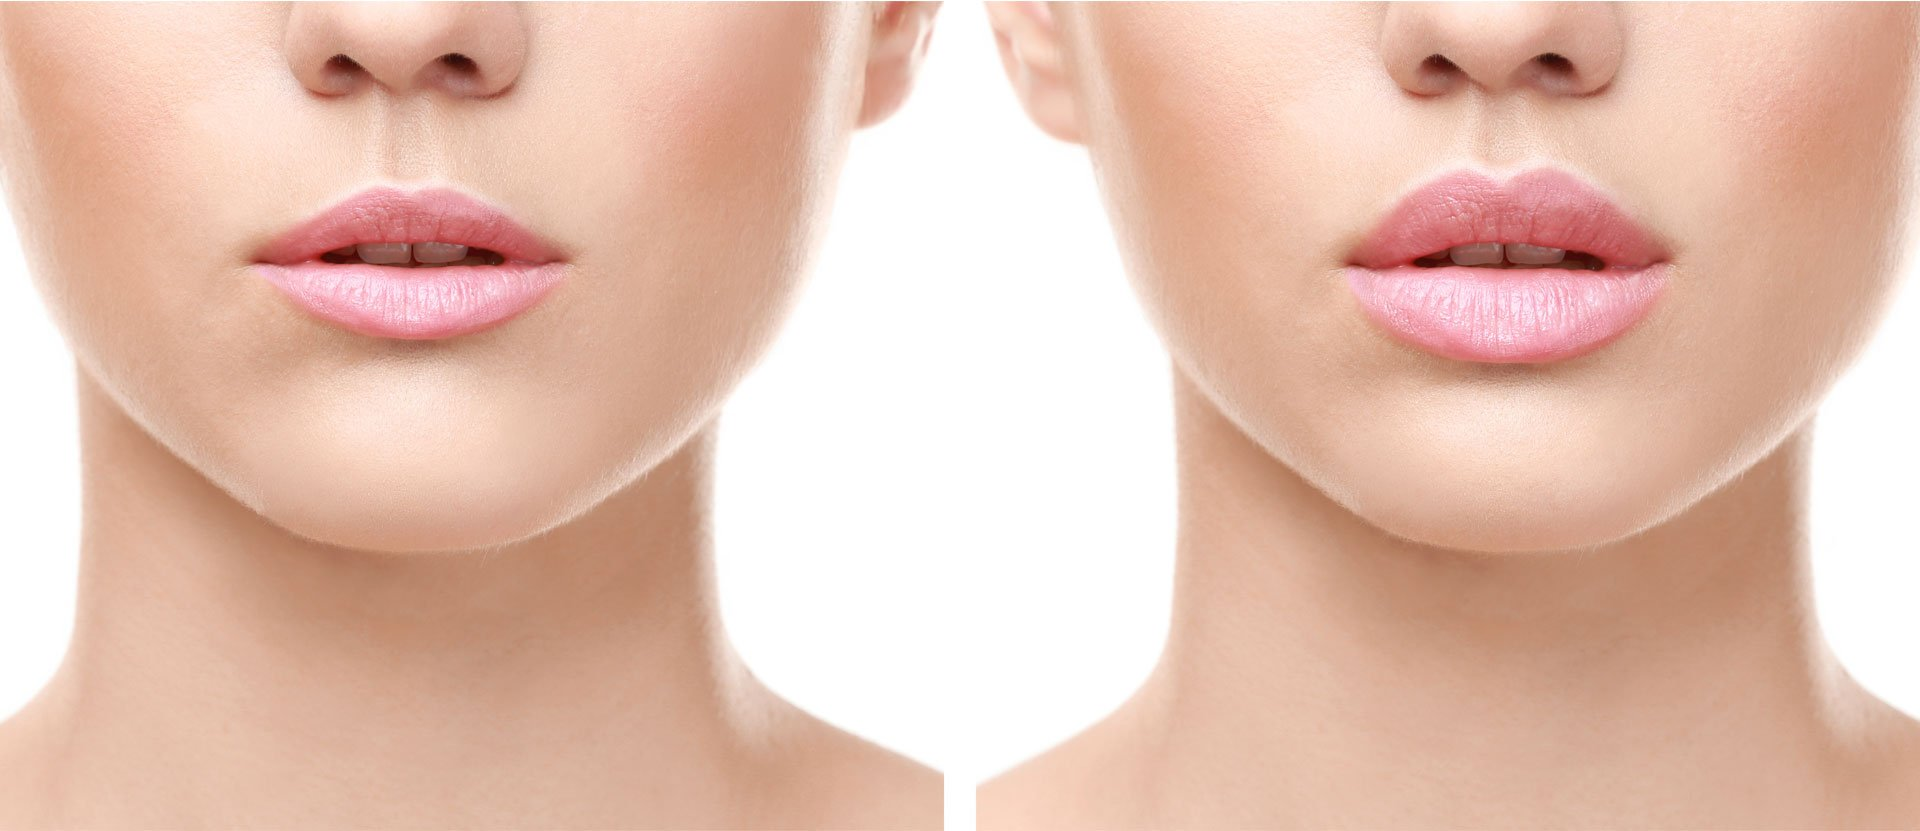 Featured image - Lip fillers: The right and the wrong way